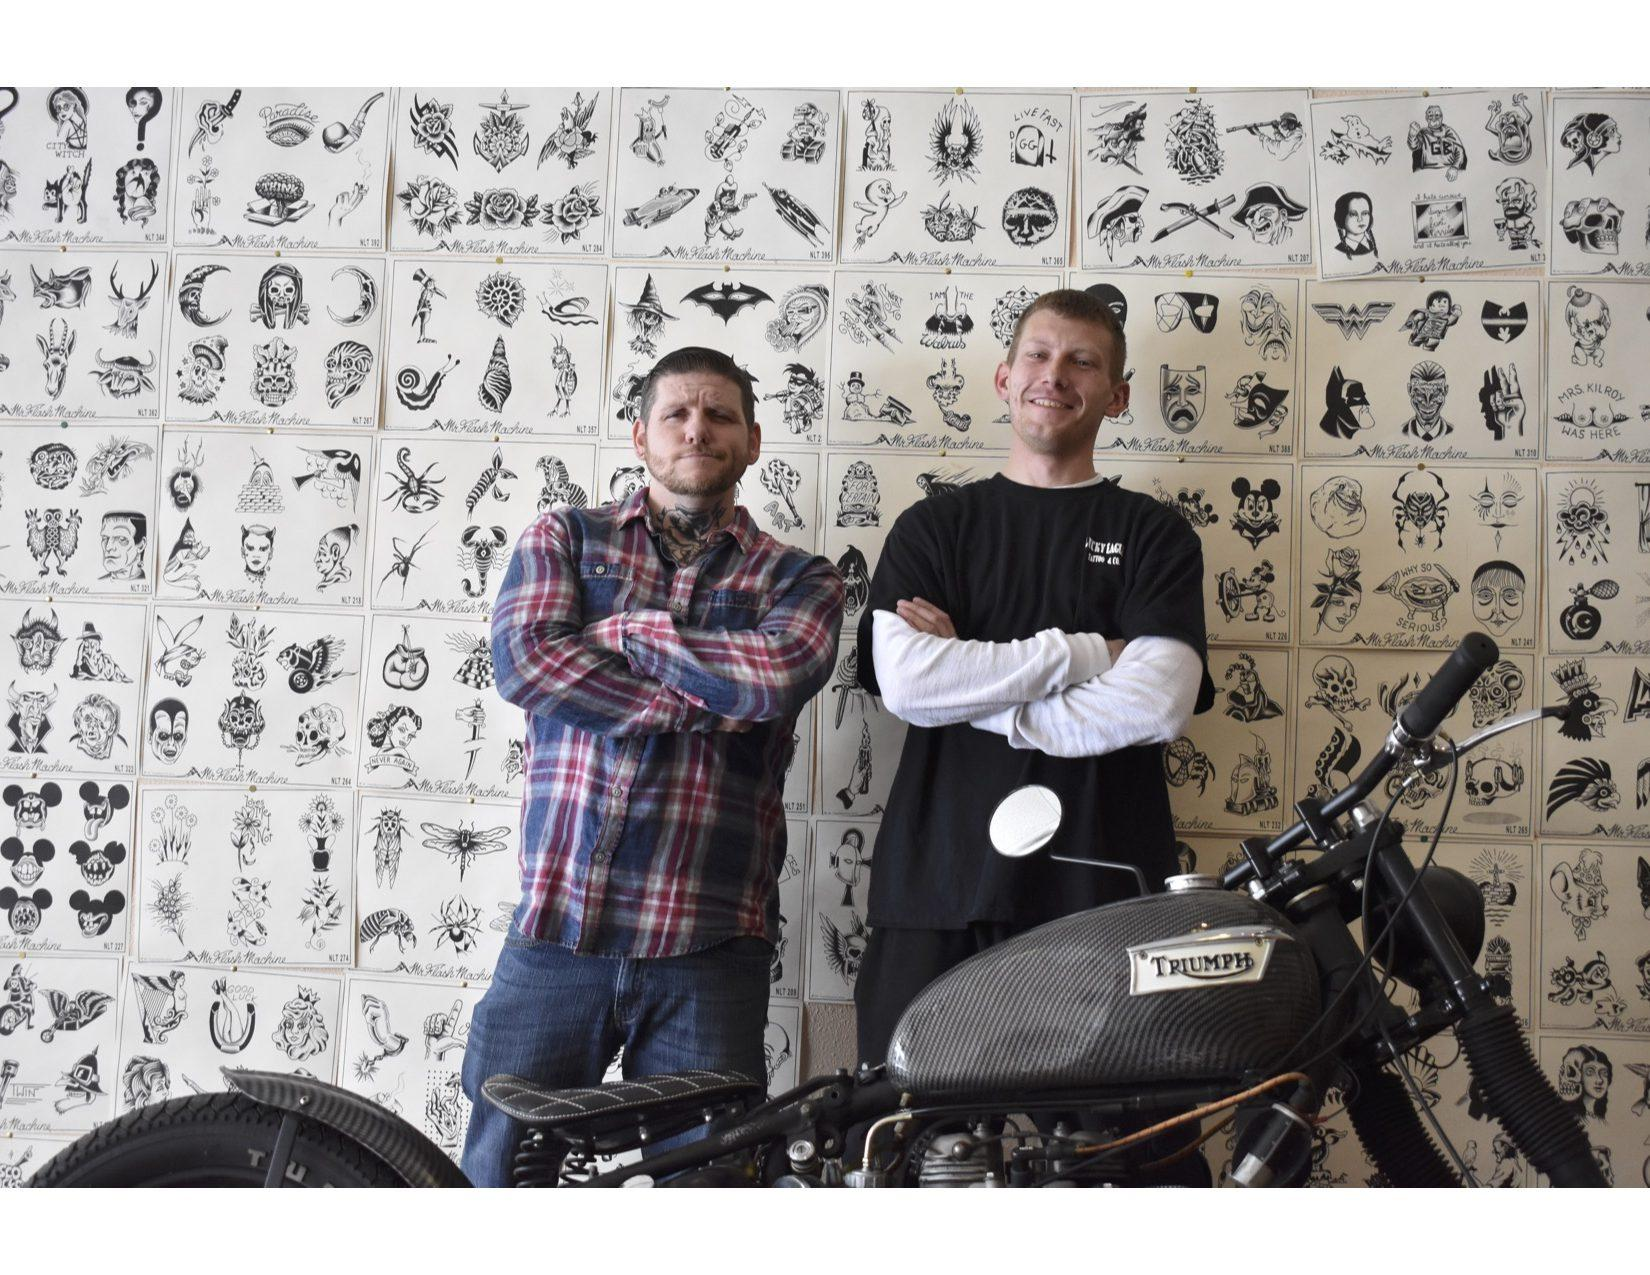 """ABBY FULLENKAMP Lucky Eagle Tattoo Company is a new shop in downtown Brookings. Josh Birrittieri (left) and Dustin """"DJ"""" Eckman are co-owners and artists. They specialize in traditional and neo-traditional Americana style tattoos. The shop is open 12 to 8 p.m. Tuesday through Saturday."""